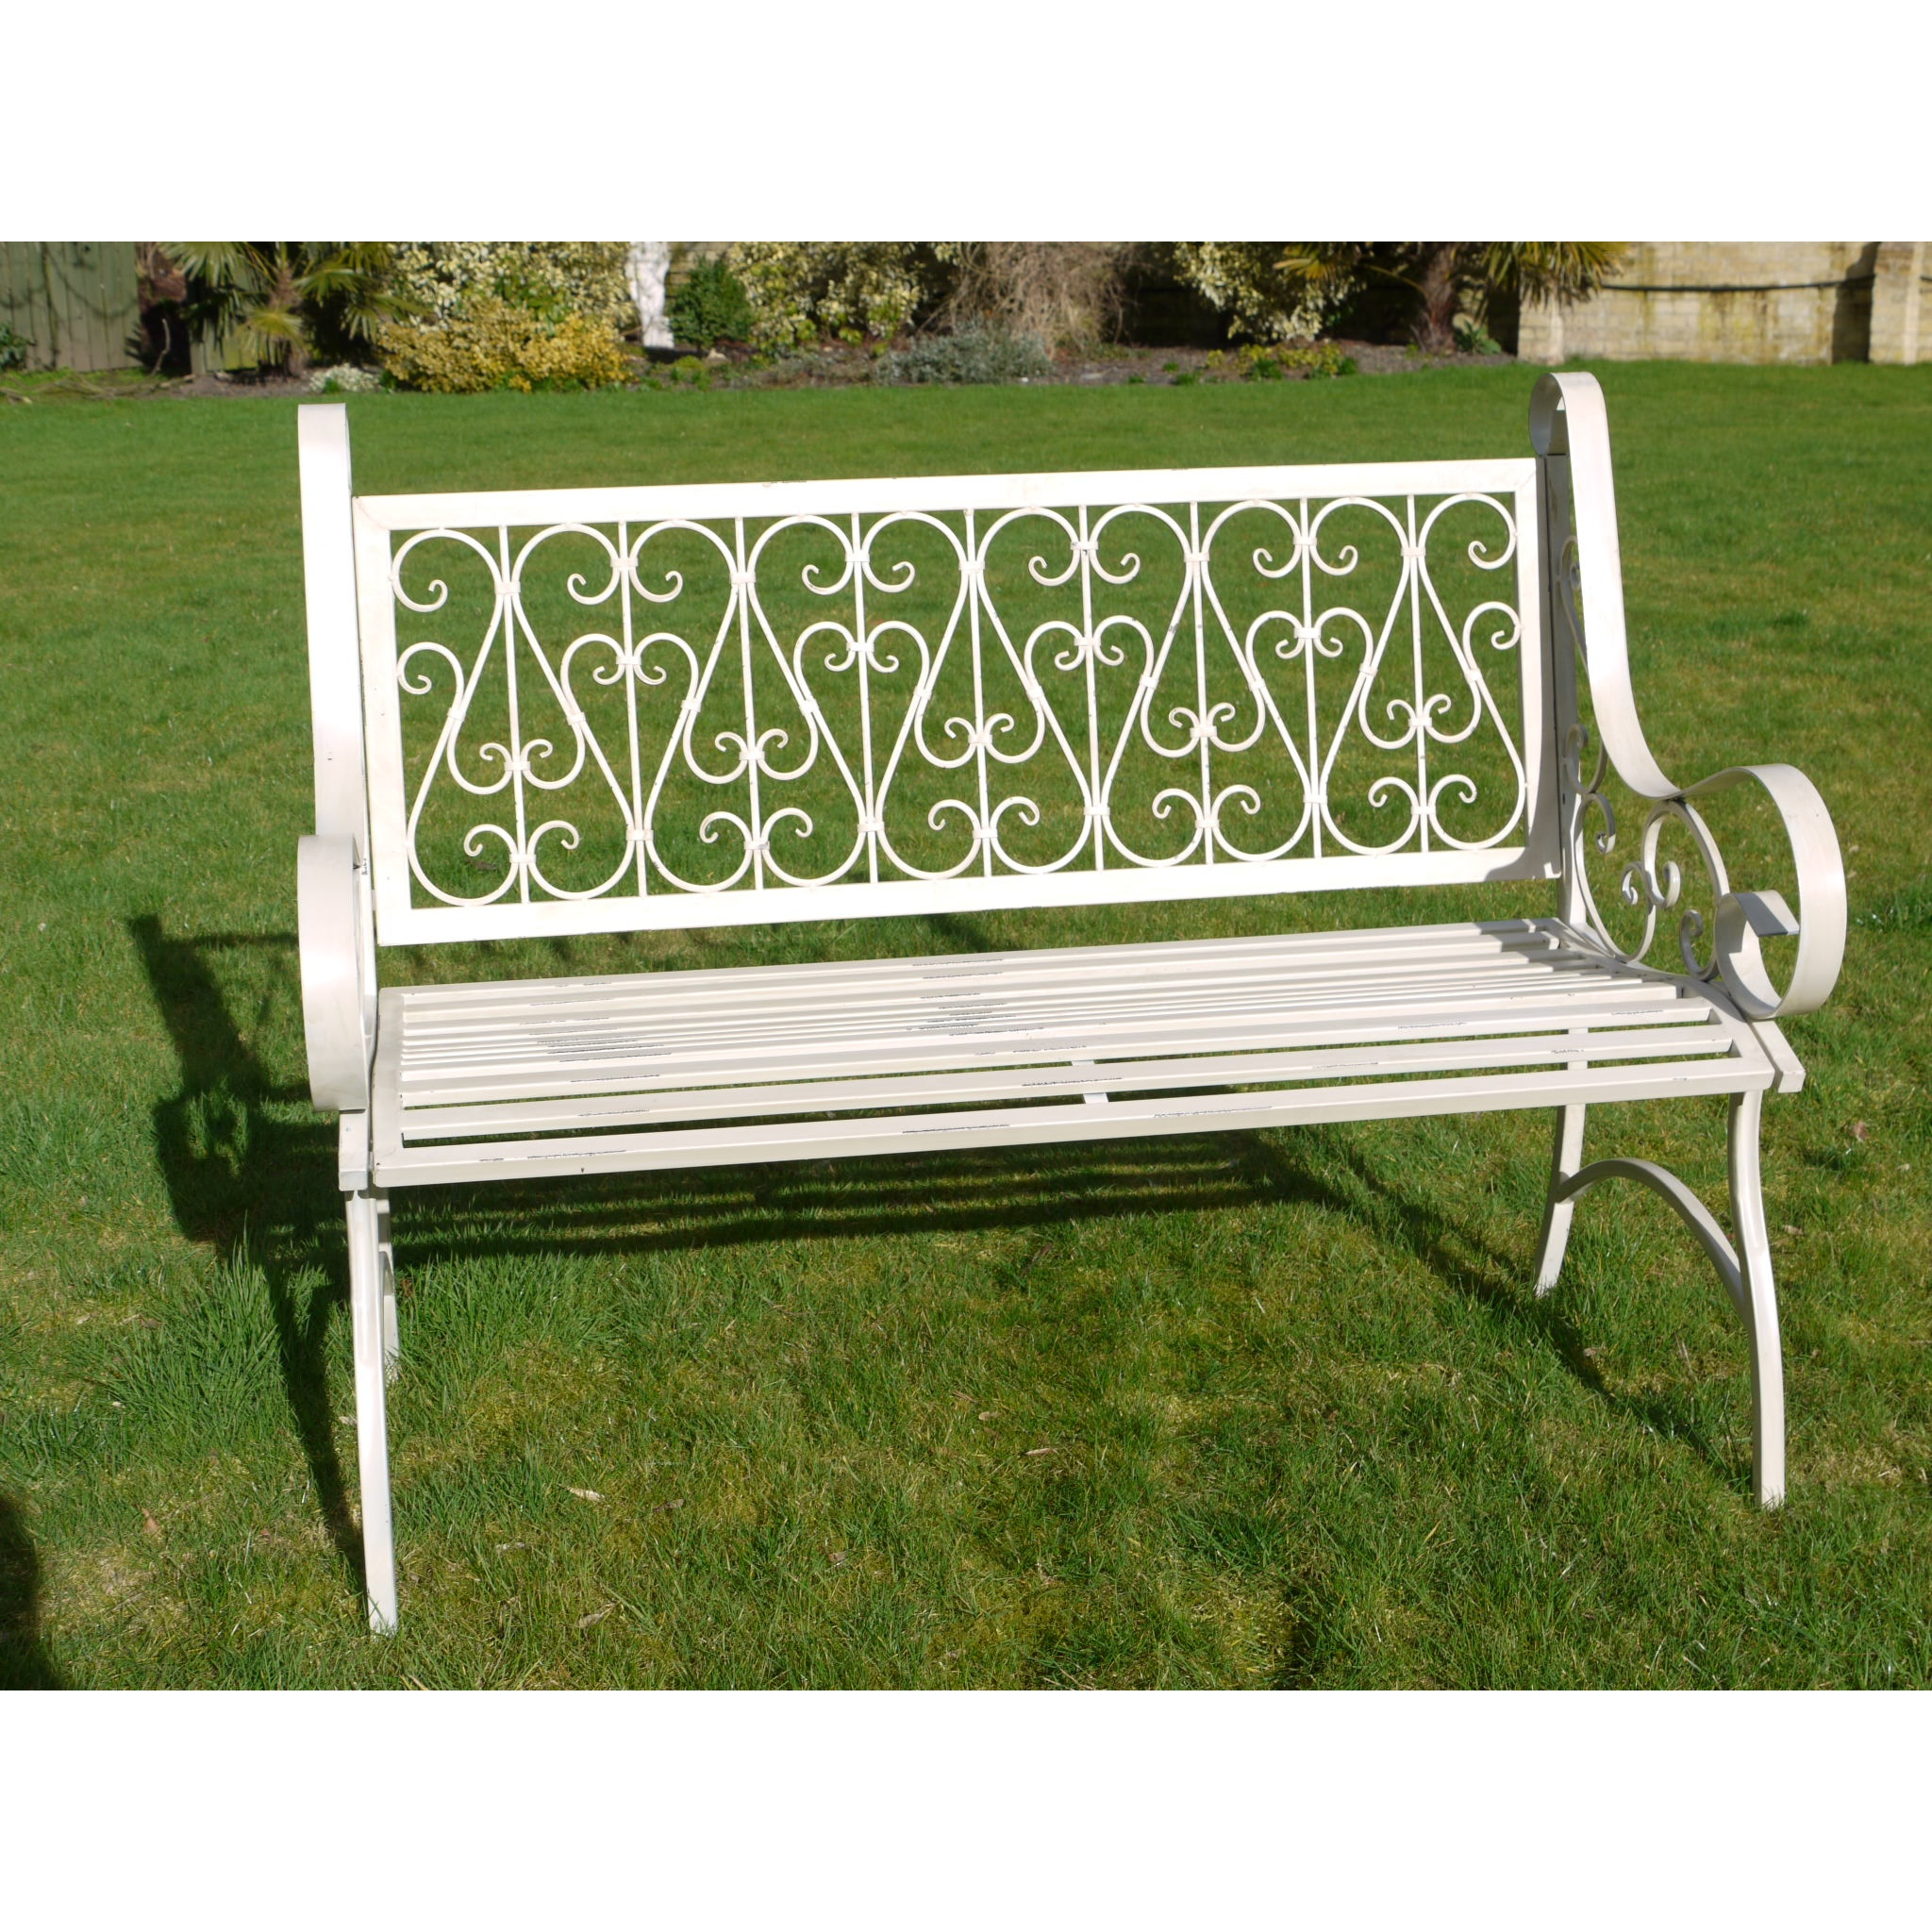 Outdoor Garden Benches Metal Wrought Iron Outdoor Bench 2016 Best Selling Wrought Bench Metal